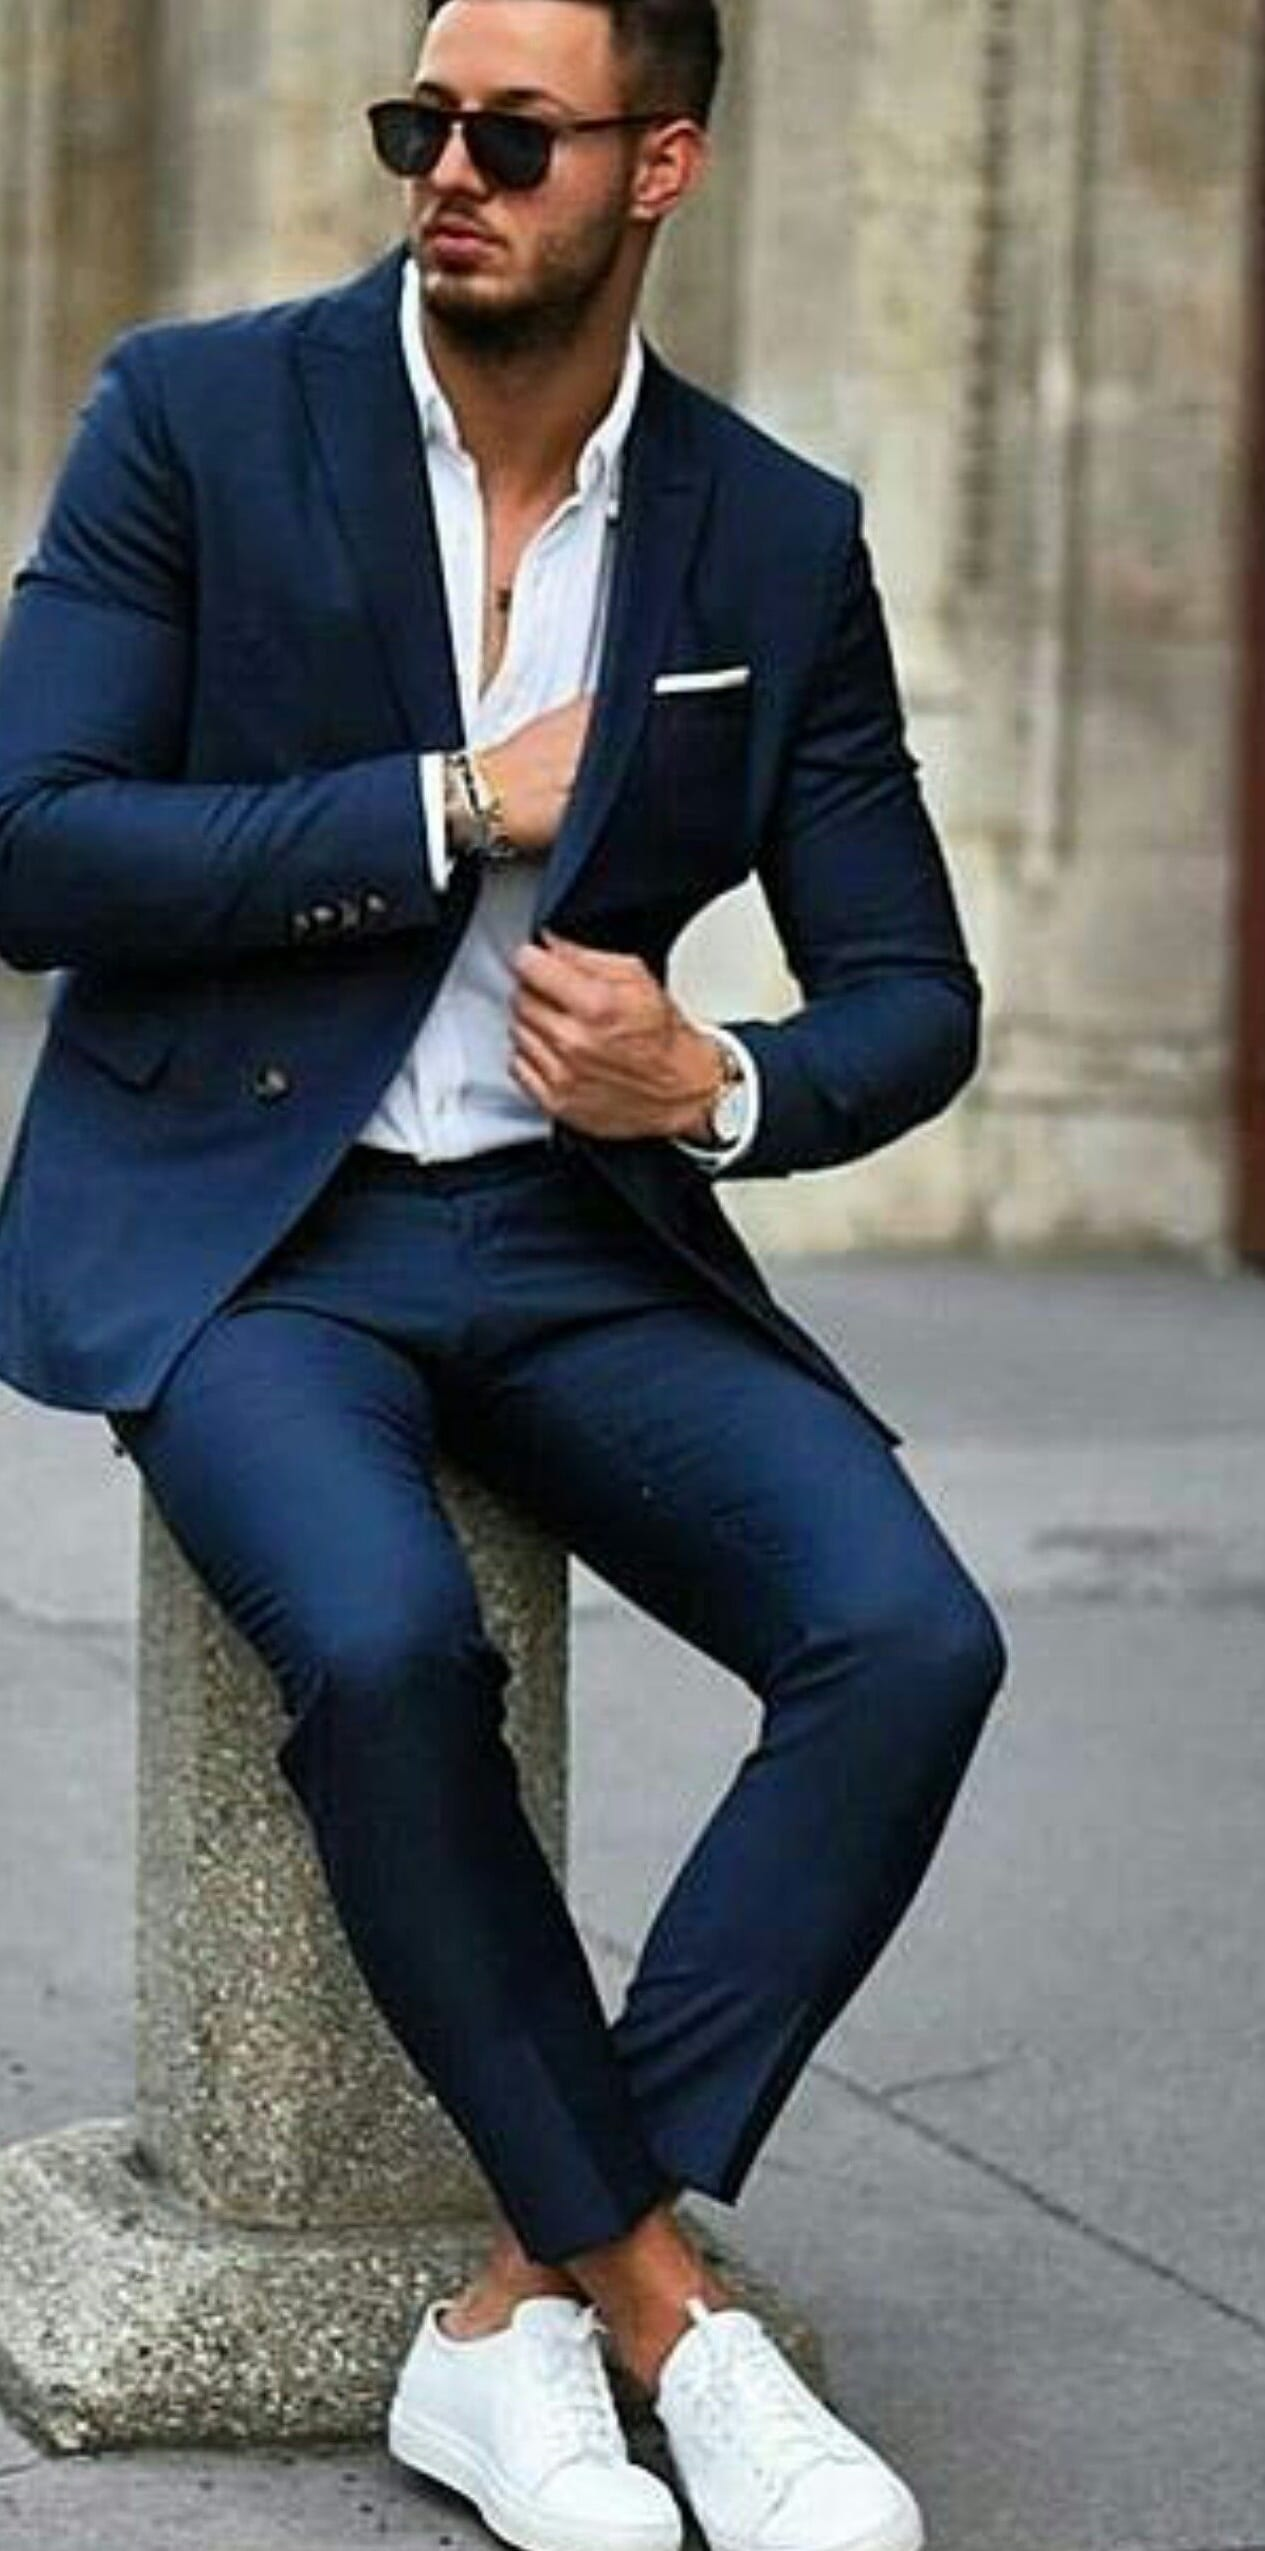 Full Suit- Blue Suit white shirt and white sneakers